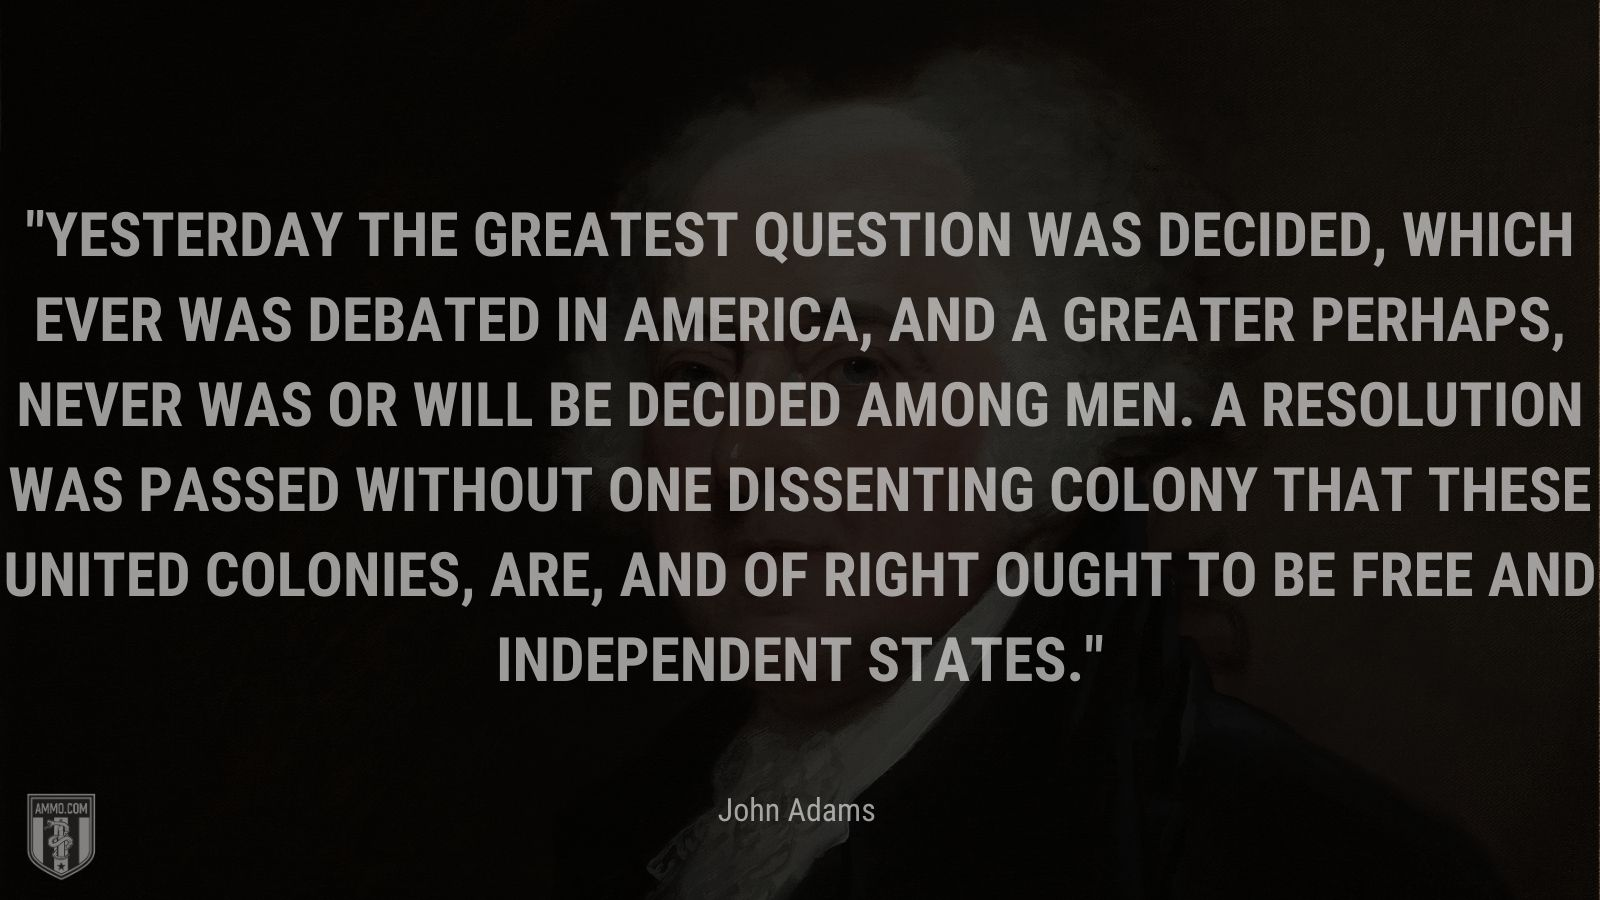 """""""Yesterday the greatest Question was decided, which ever was debated in America, and a greater perhaps, never was or will be decided among Men. A Resolution was passed without one dissenting Colony that these united Colonies, are, and of right ought to be free and independent States."""" - John Adams"""